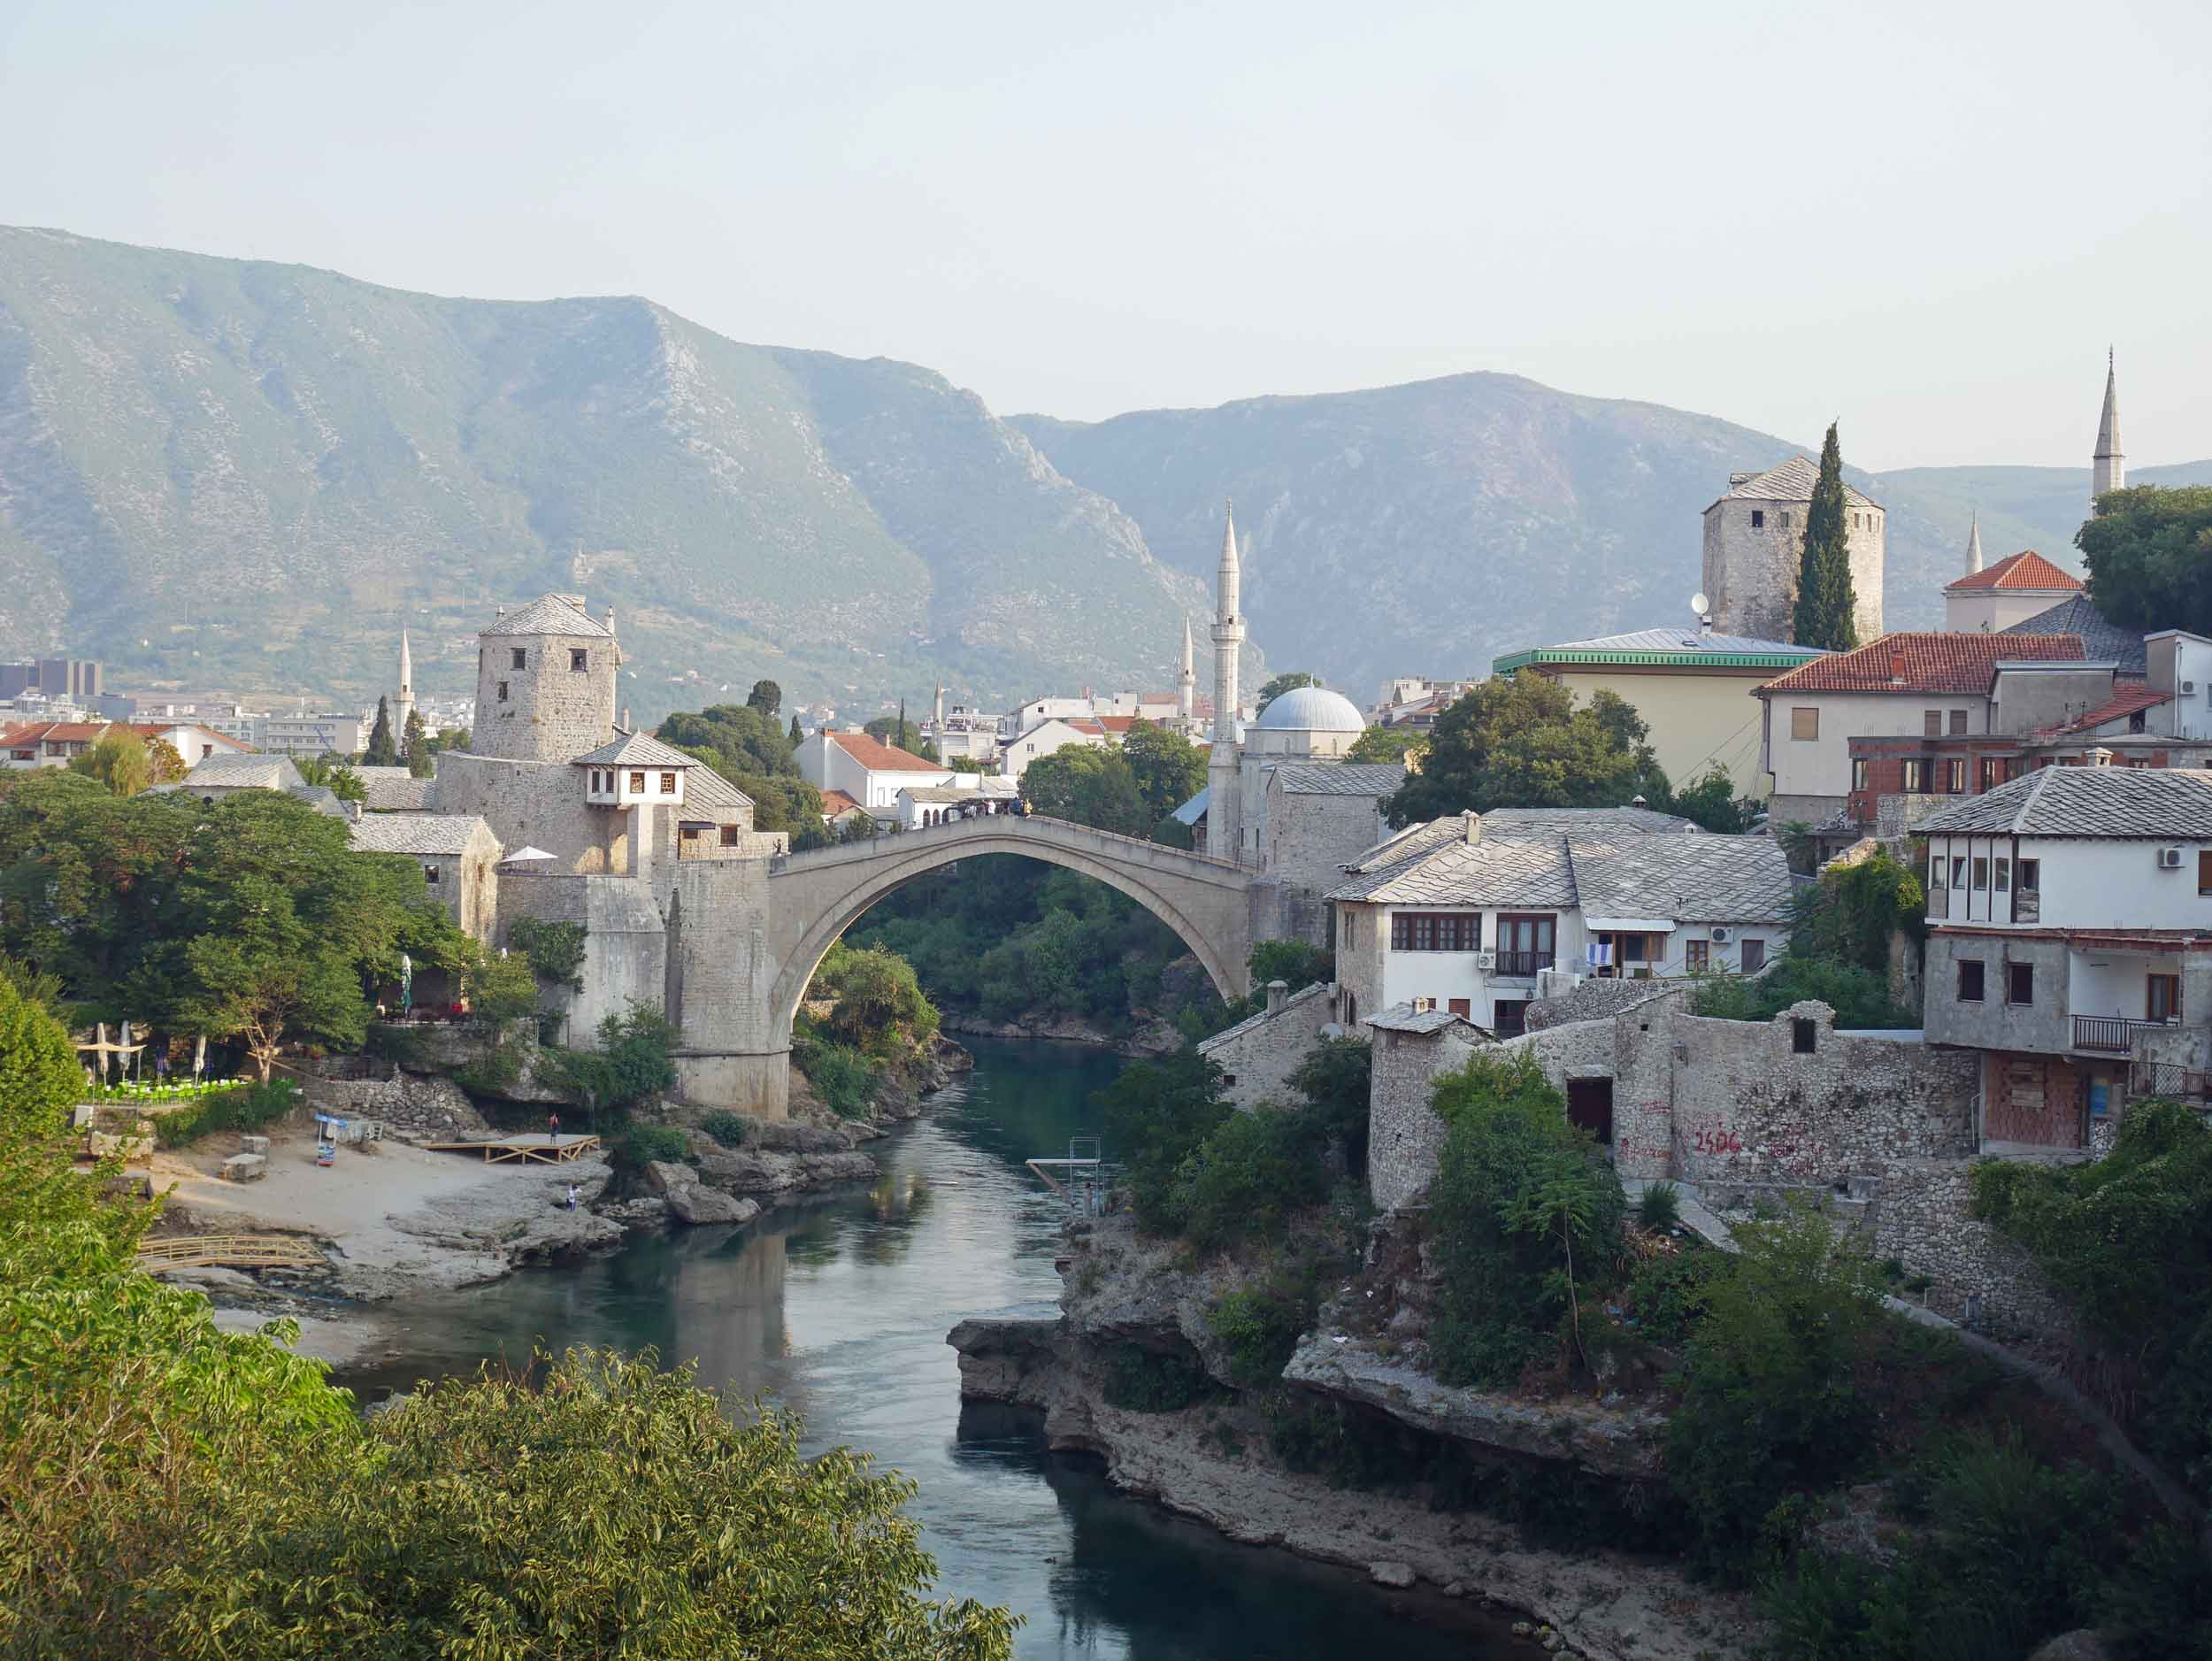 Charming Mostar was badly damaged during the Bosnian War, including the Stari Most which had to be rebuilt during reconstruction.